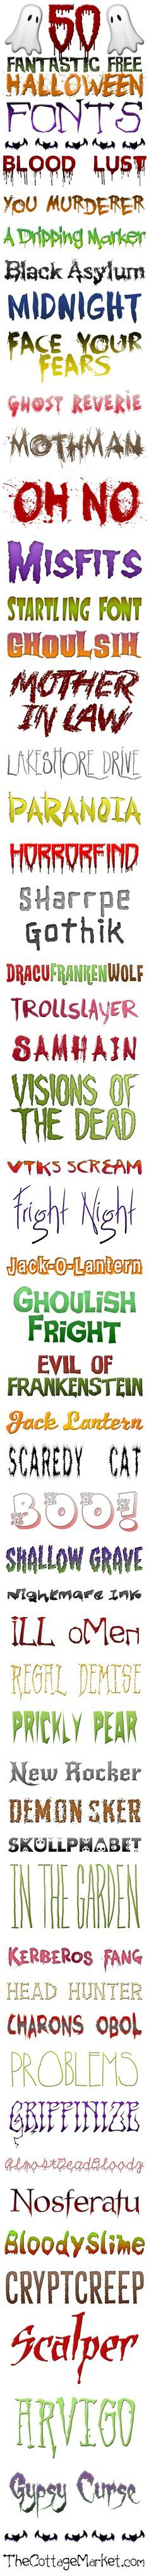 FREE Halloween Fonts - so many great ones to use in your own ...